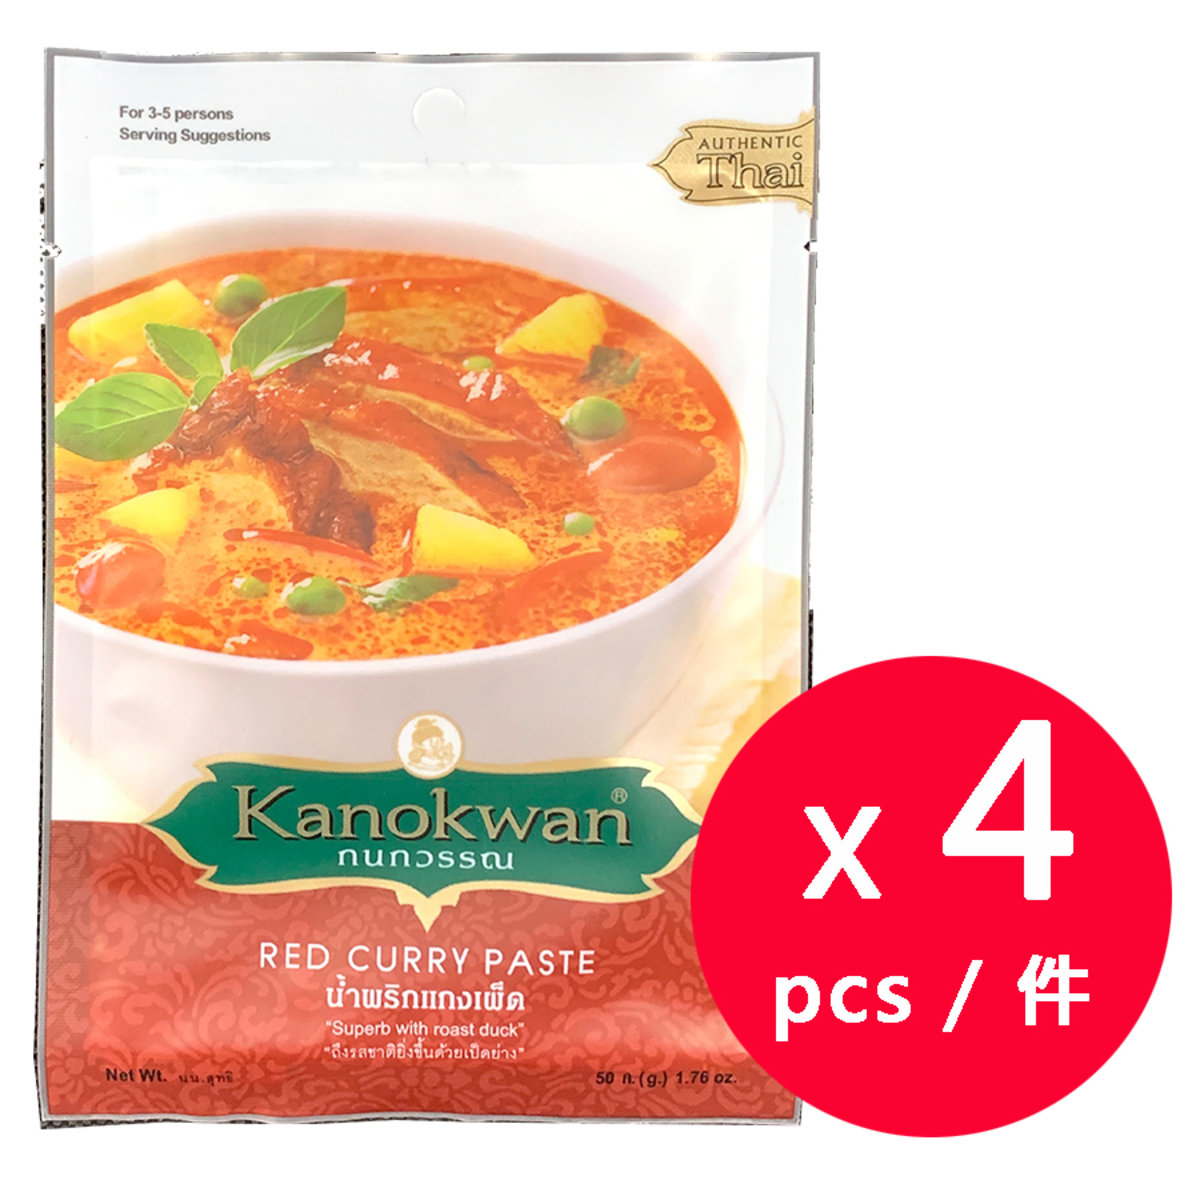 Kanokwan Red Curry Paste 50g x 4 packs (Parallel Import)